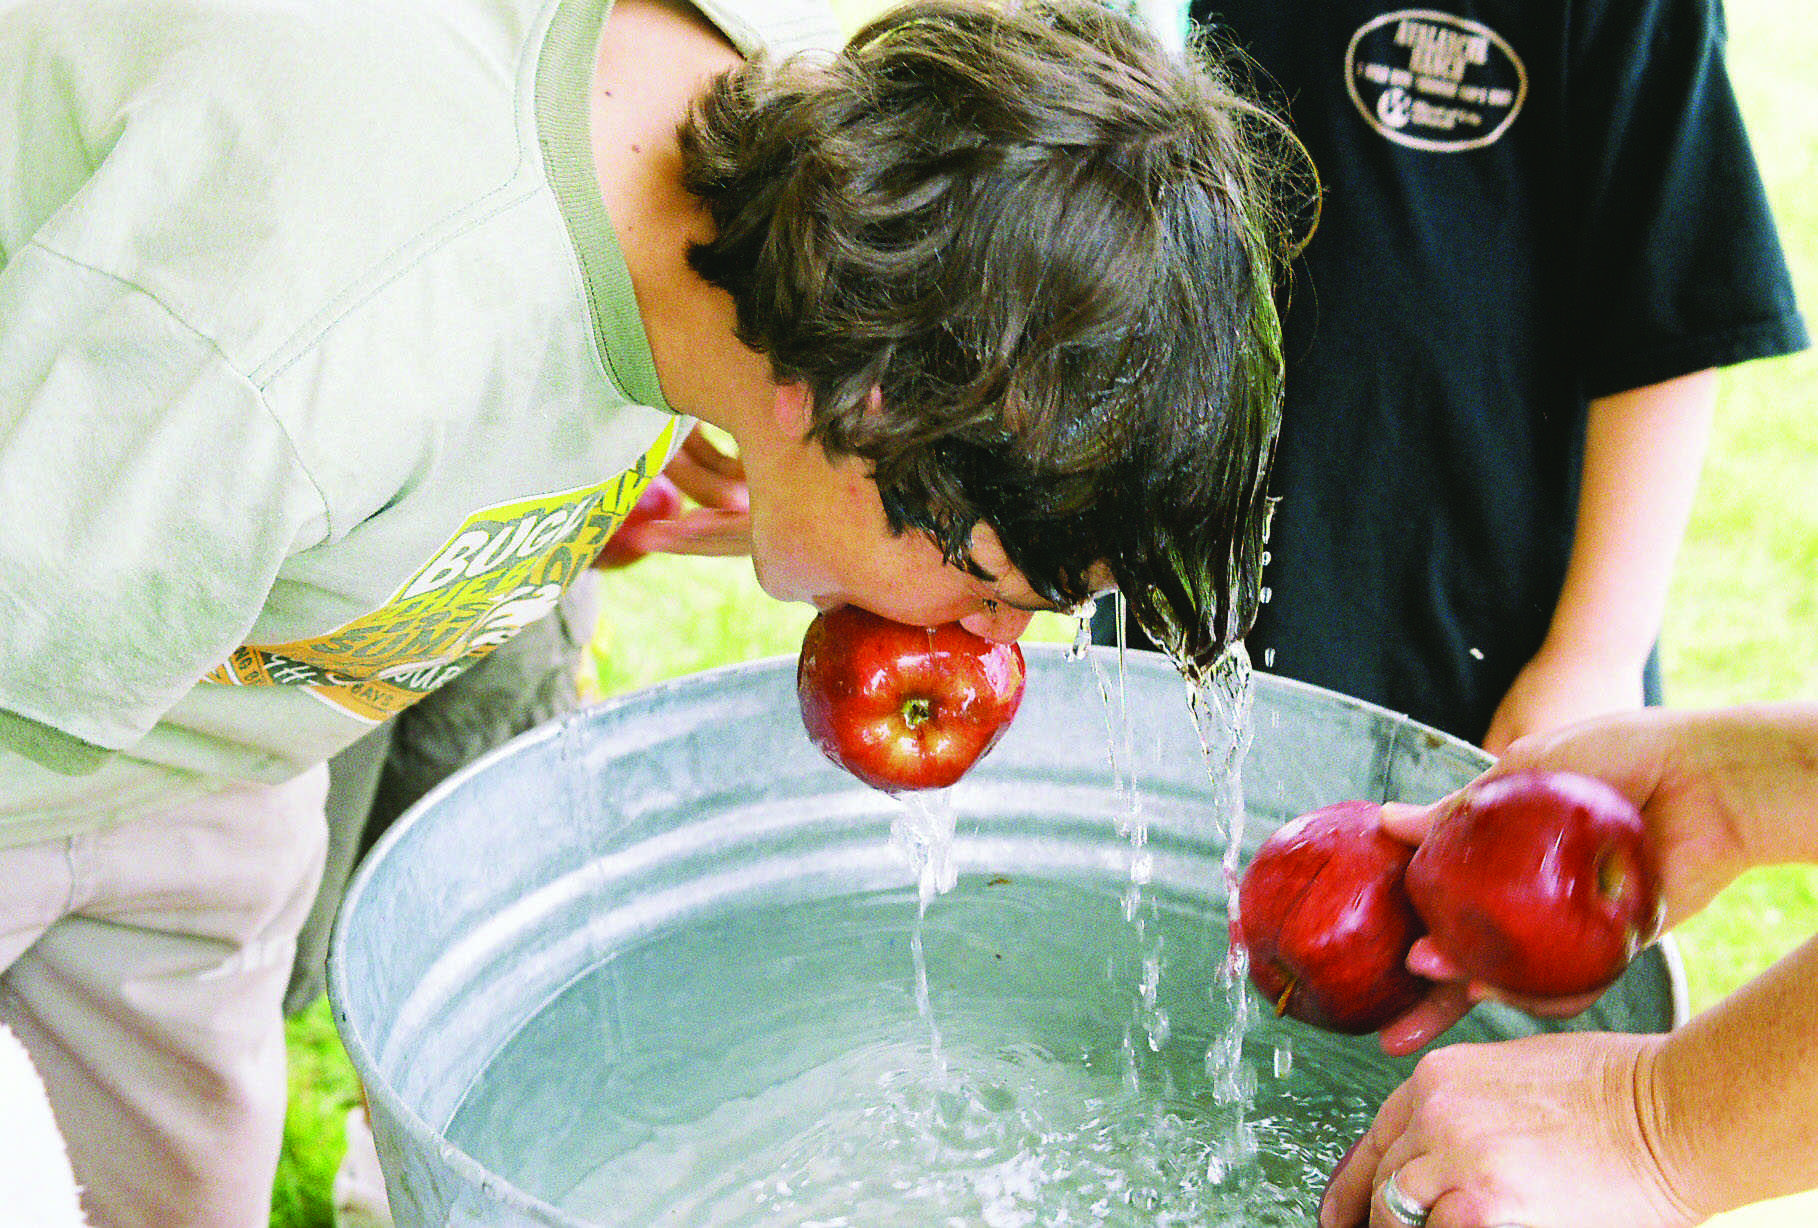 Wreck: bobbing for apples--how about no?